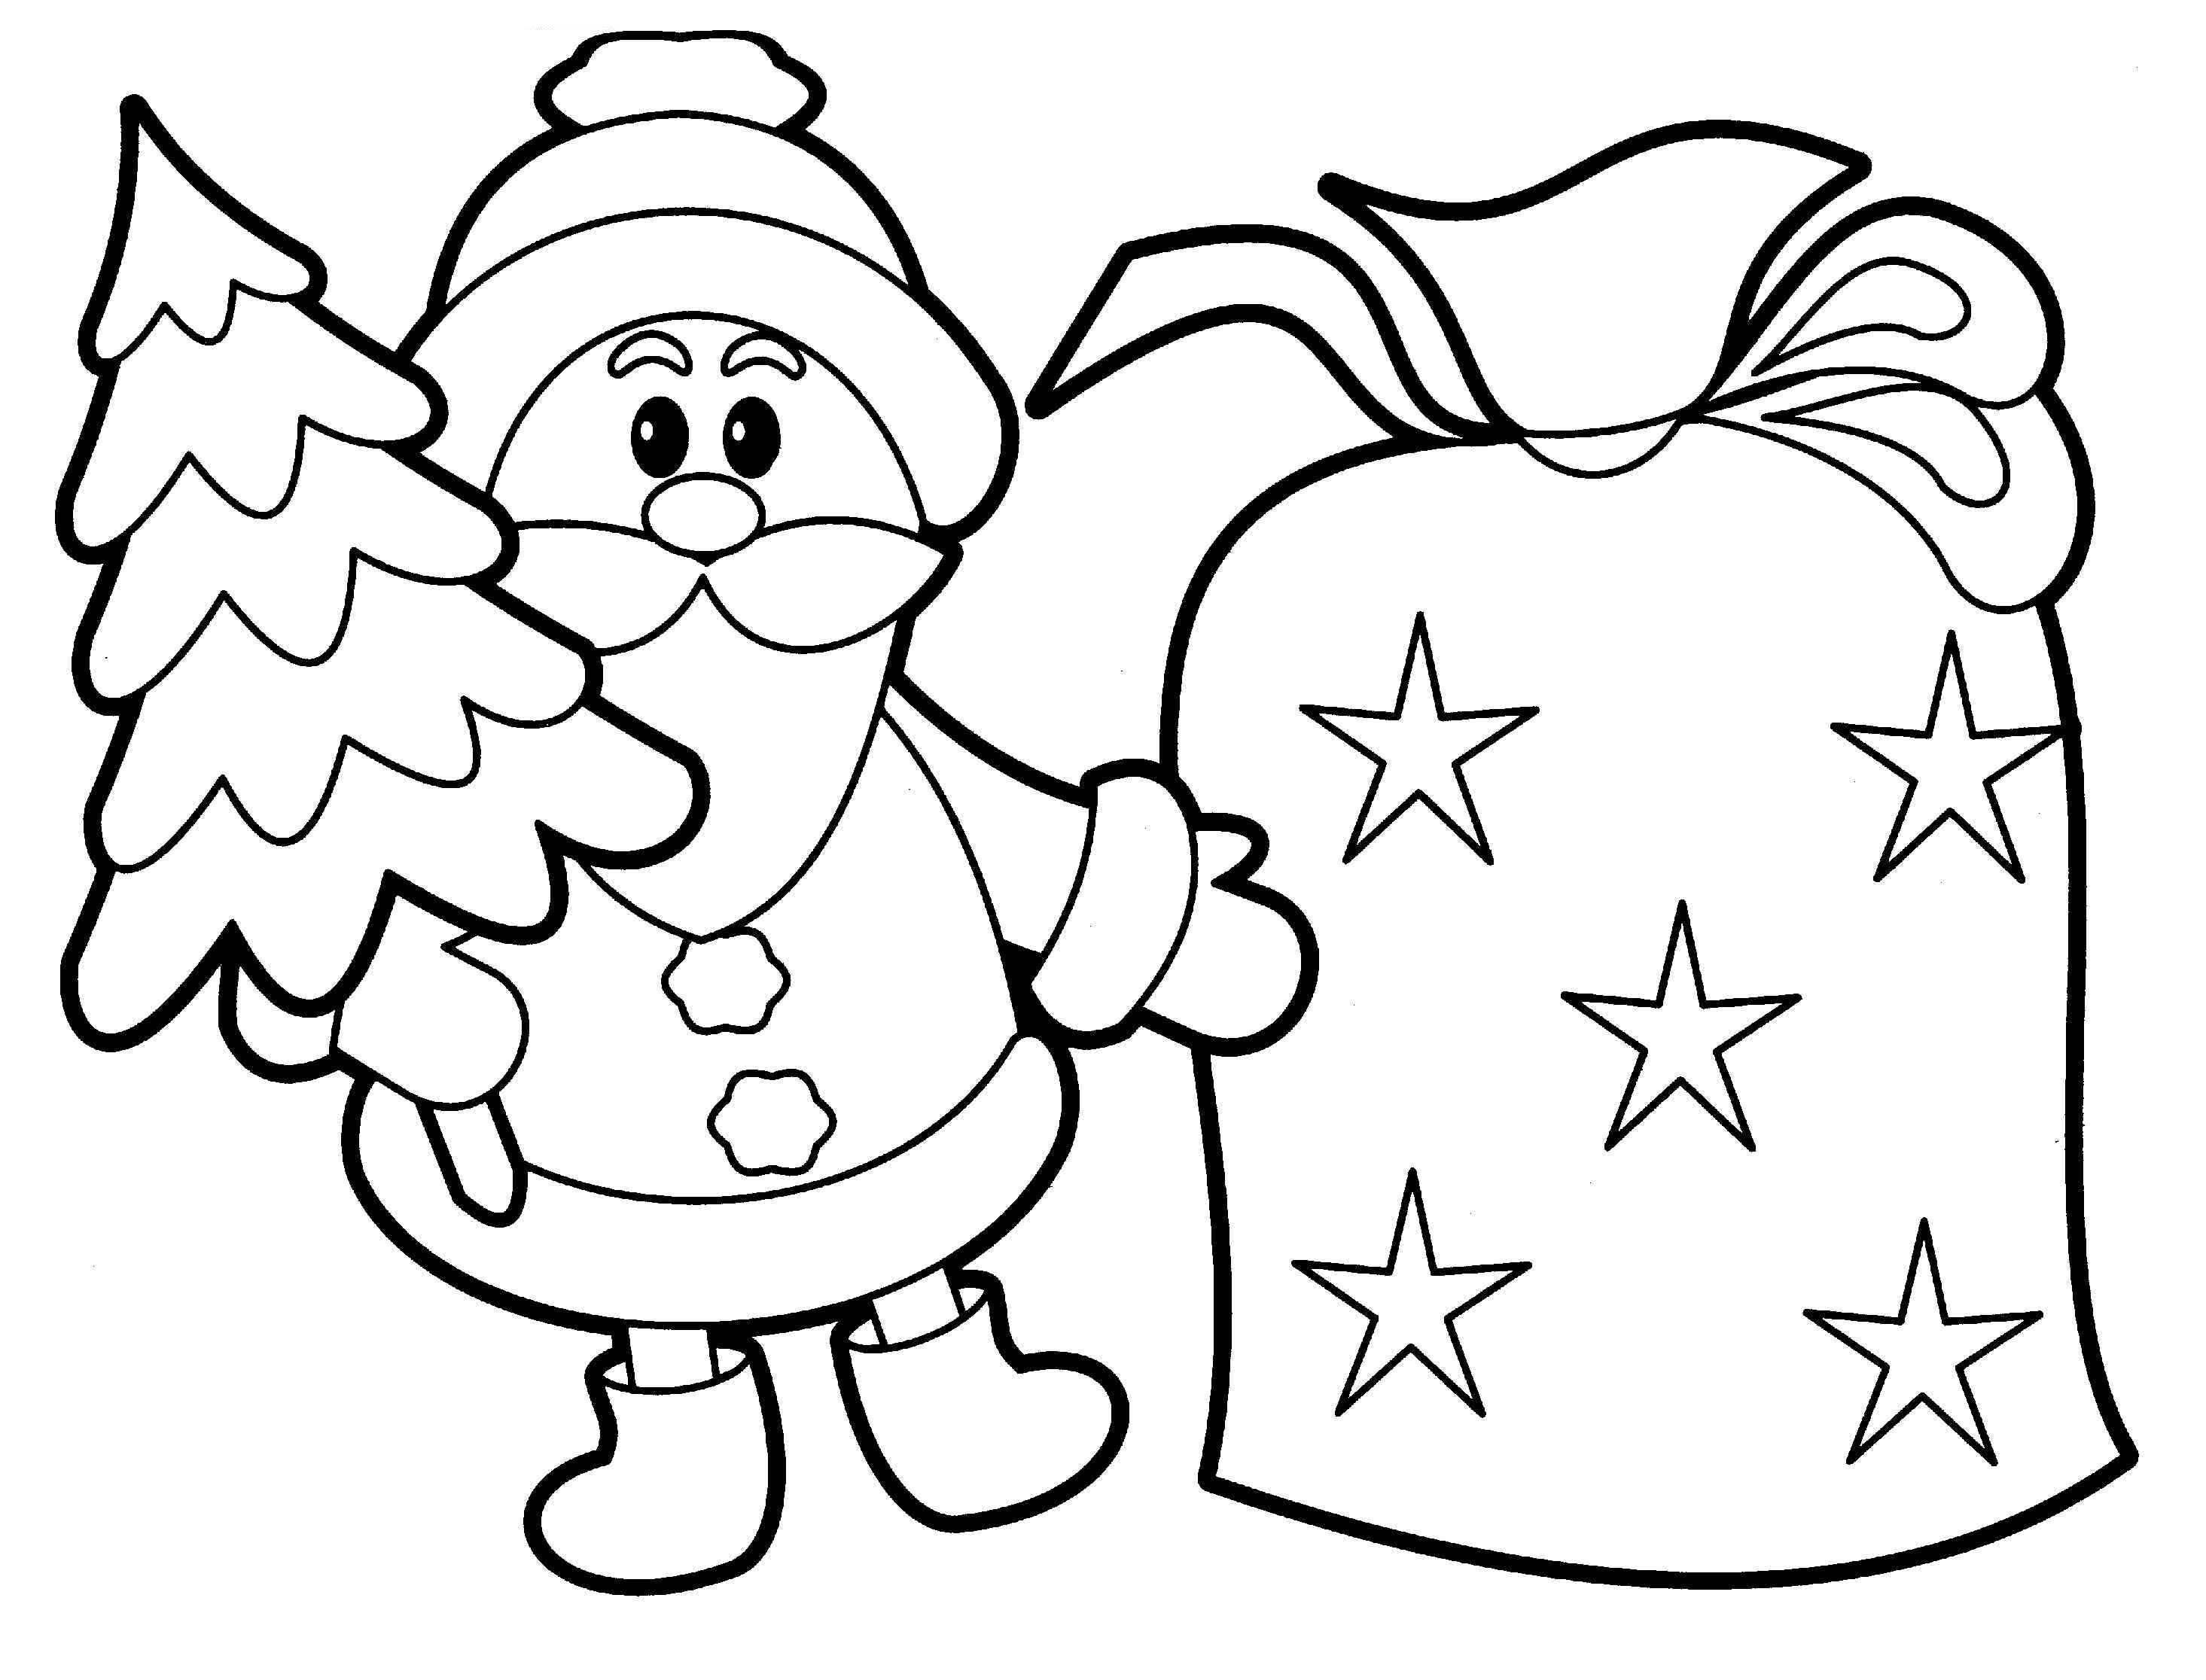 Adult Beauty Coloring Pages For Kids Christmas Images top christmas hello kitty coloring pages for kids printable free toddlers gallery images